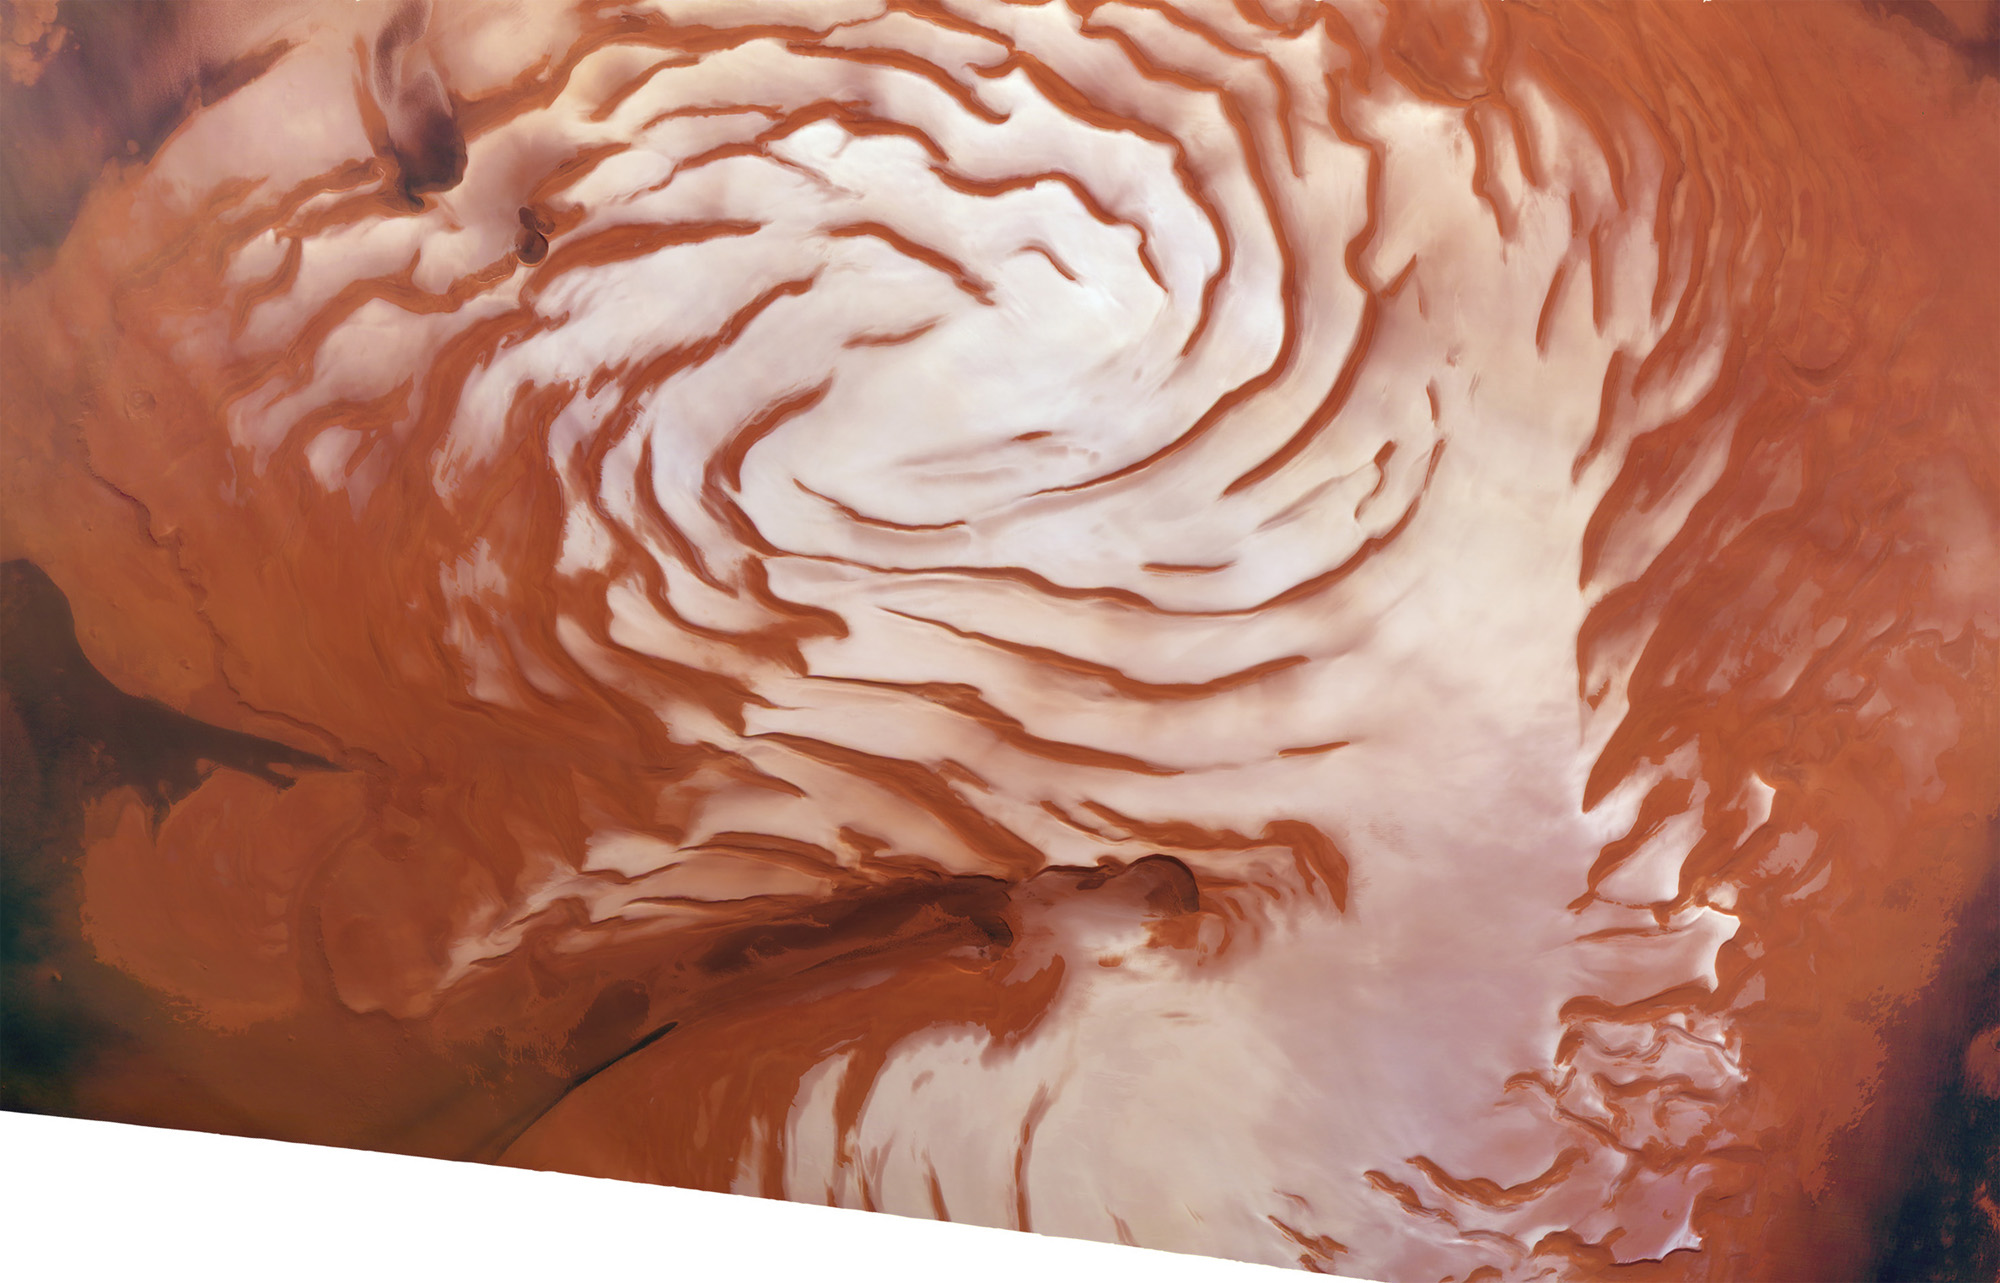 The north polar ice cap of Mars is seen in this mosaic view, which scientists made by combining data from the European Mars Express spacecraft and NASA's Mars Reconnaissance Orbiter. The spiral features help scientists understand how ice ages on Mars work